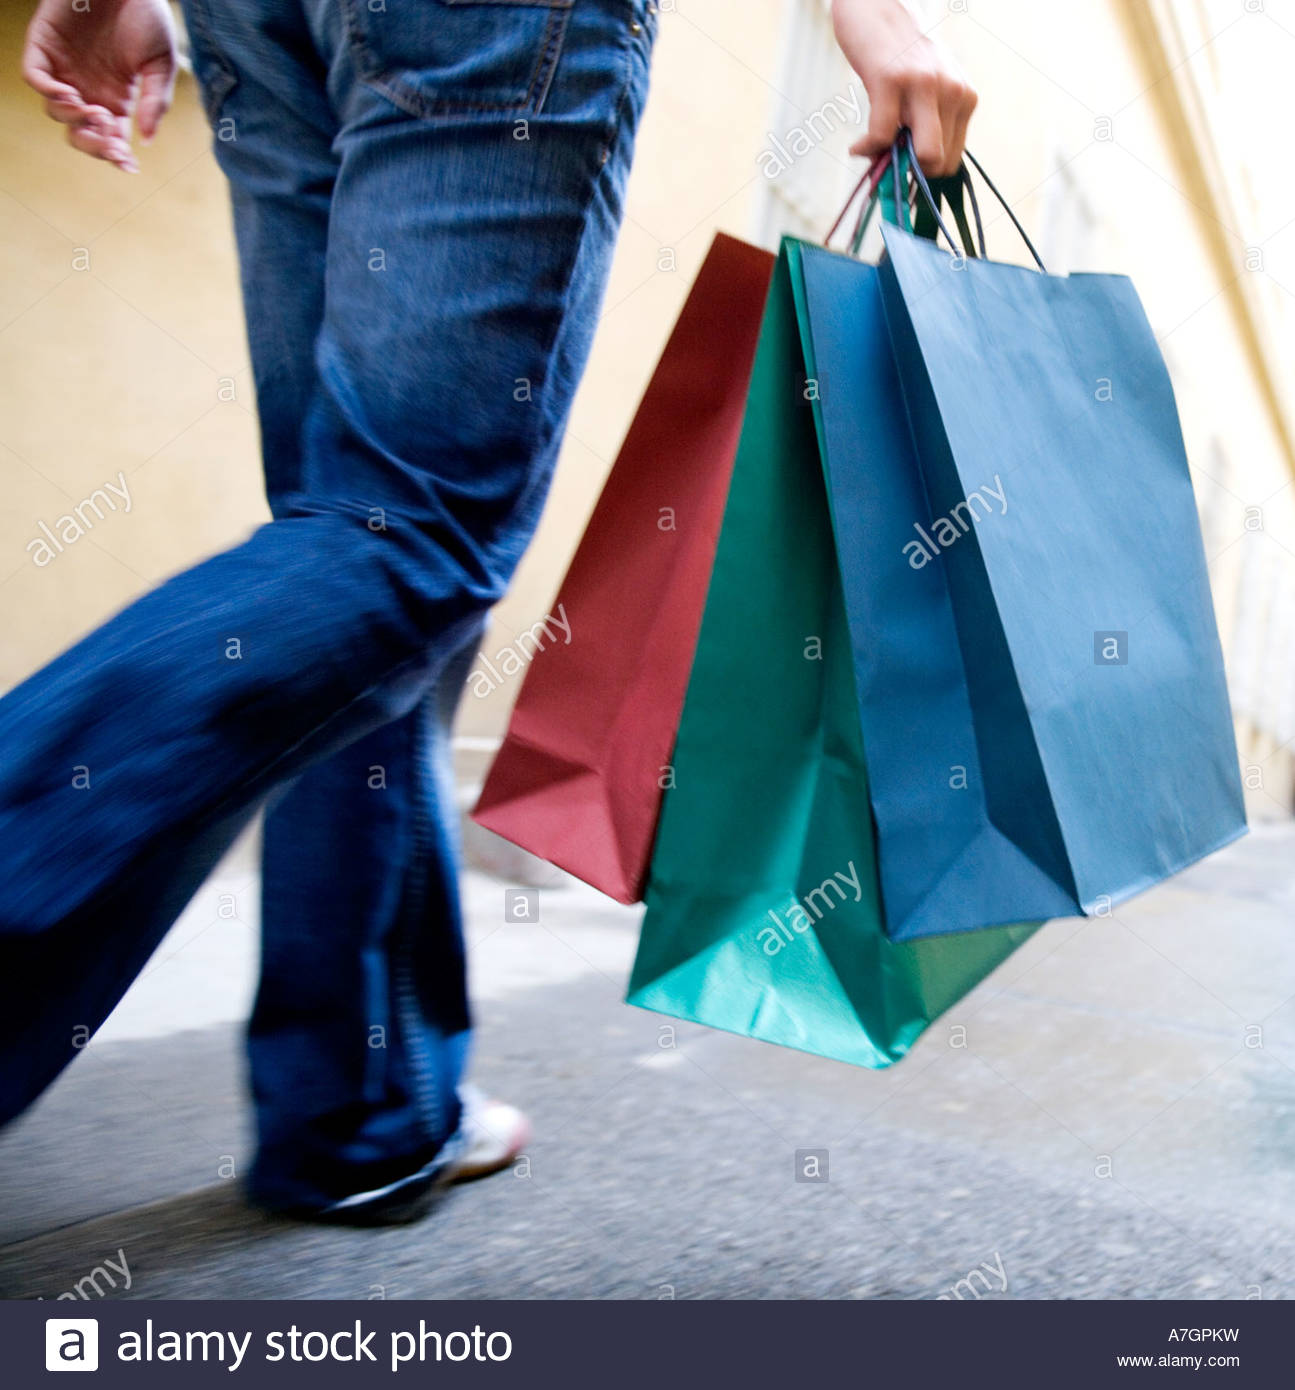 A person carrying shopping bags - Stock Image